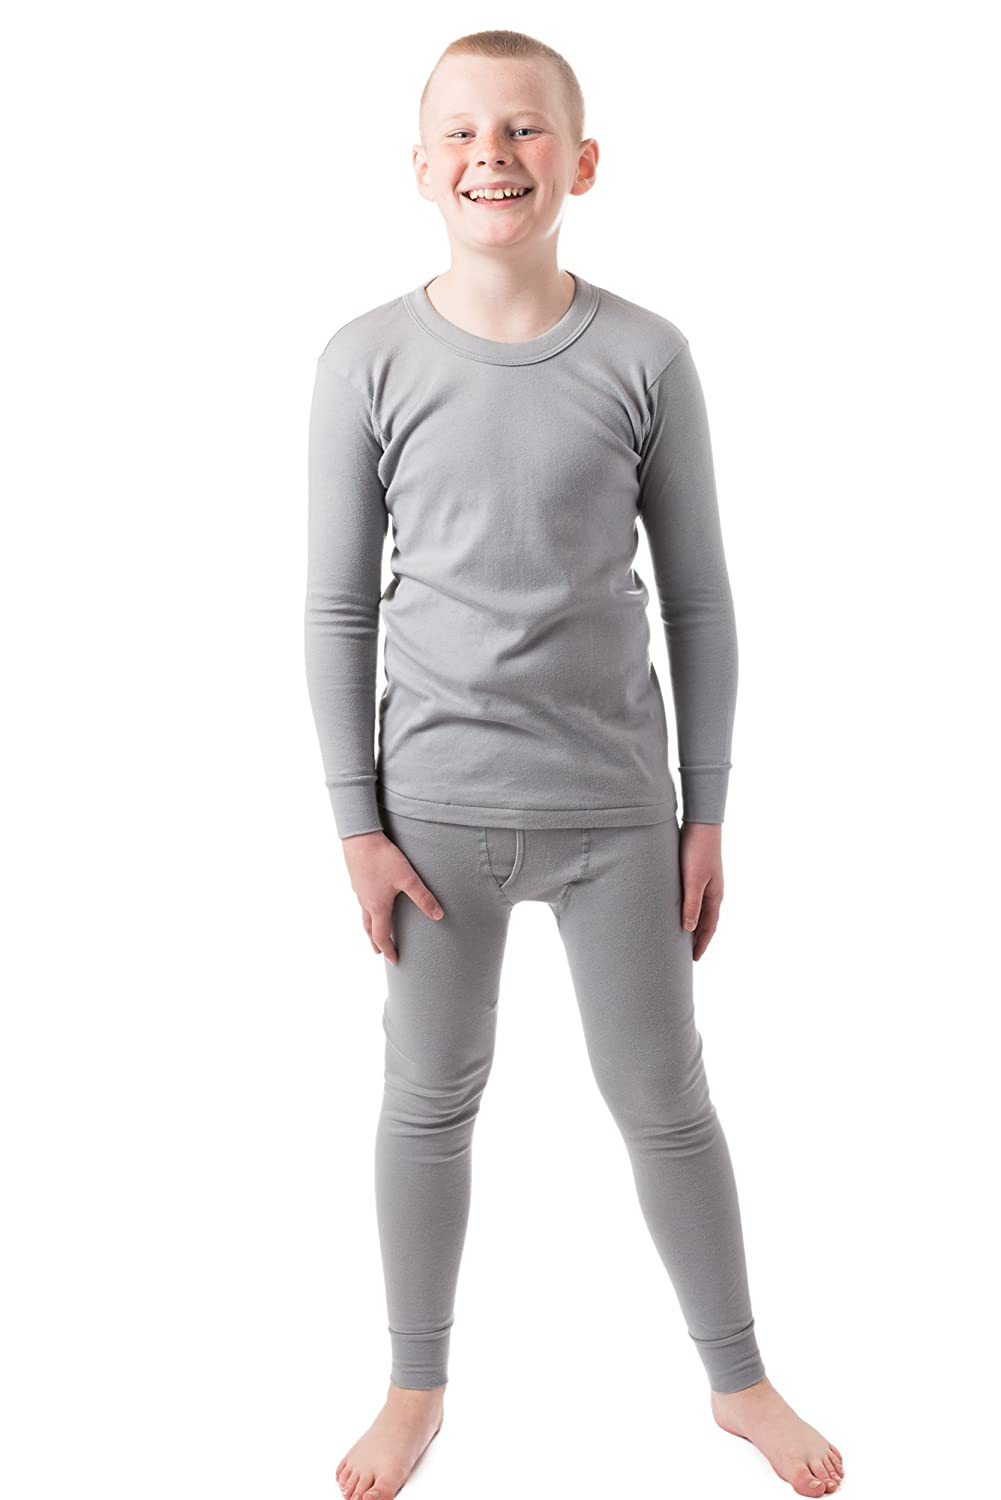 Sheerly Touch-Ya Boy's Round Neck Long Sleeve Top & Bottom 100% Cotton Thermal Underwar